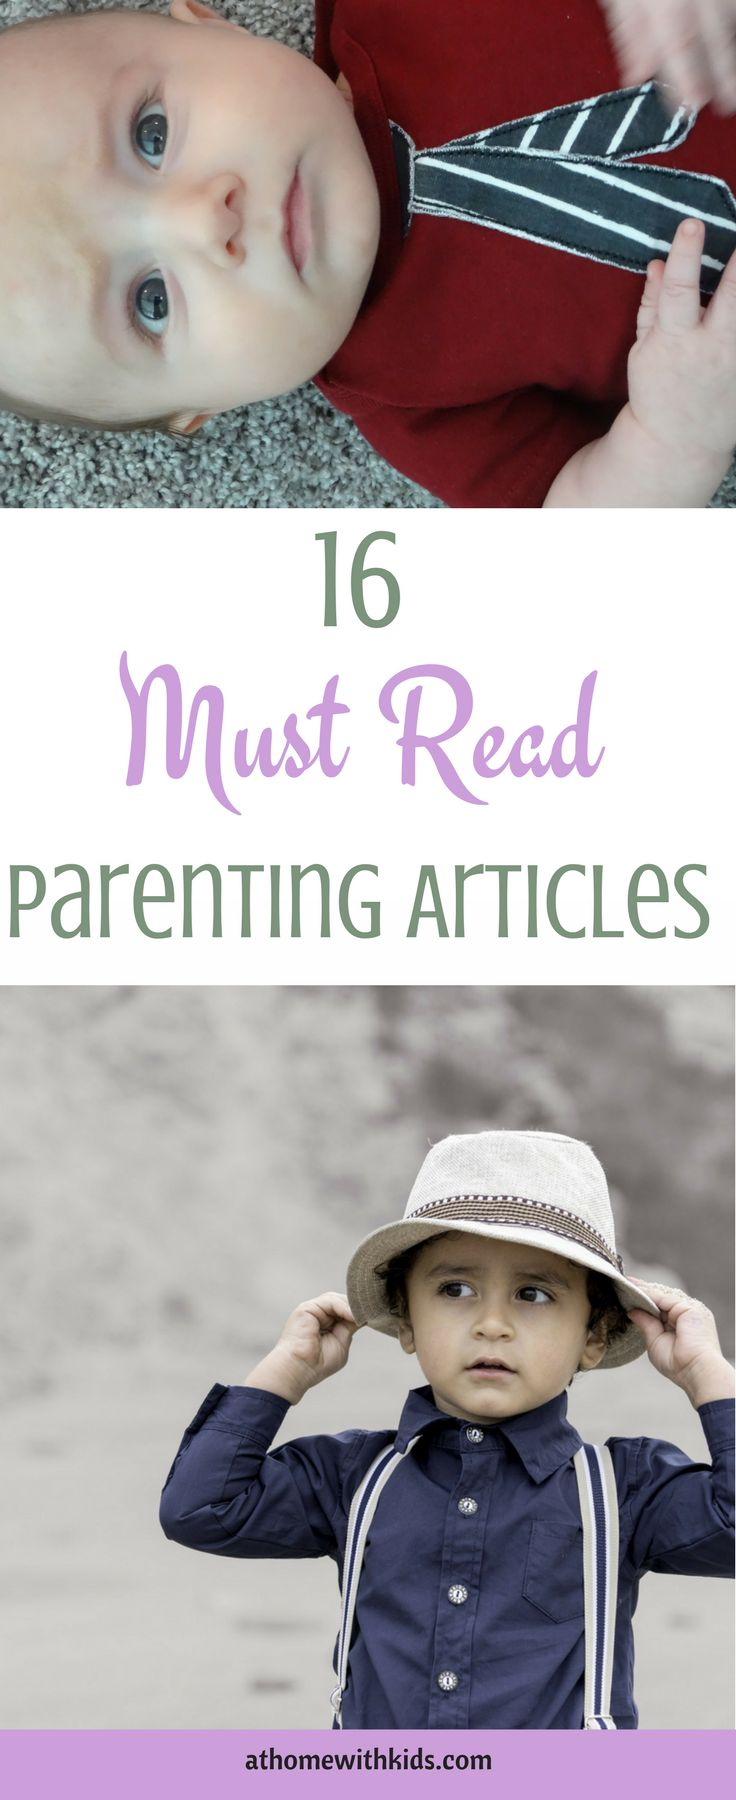 16 Amazong Parenting Articles that will Simplify your Life athomewithkidsathomewithkids.com